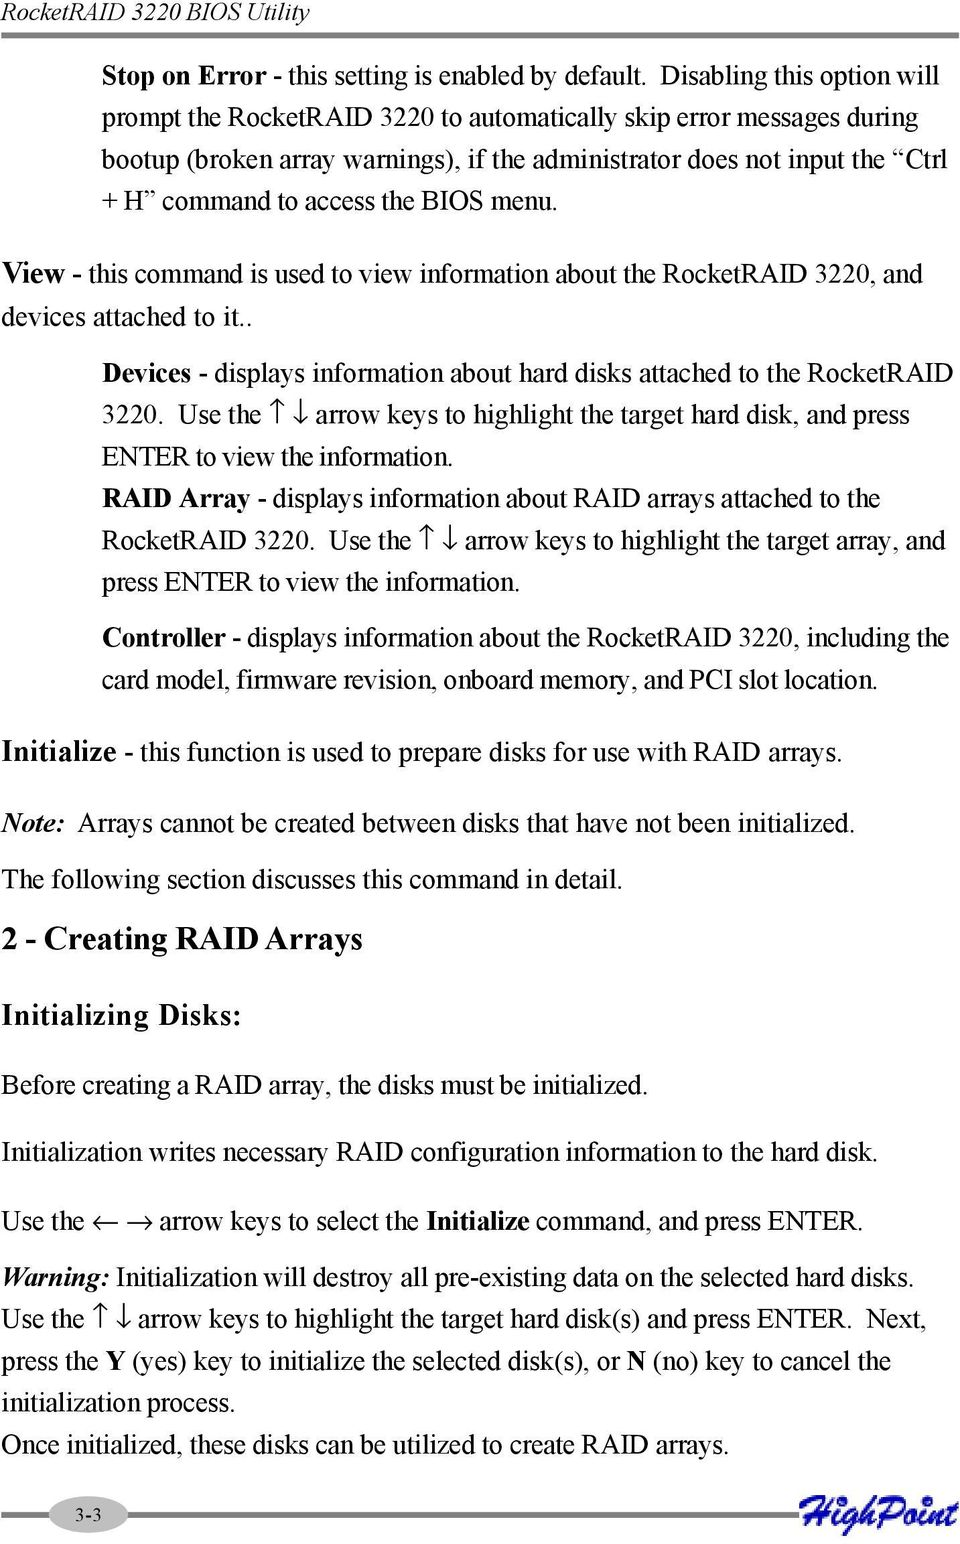 the BIOS menu. View - this command is used to view information about the RocketRAID 3220, and devices attached to it.. Devices - displays information about hard disks attached to the RocketRAID 3220.